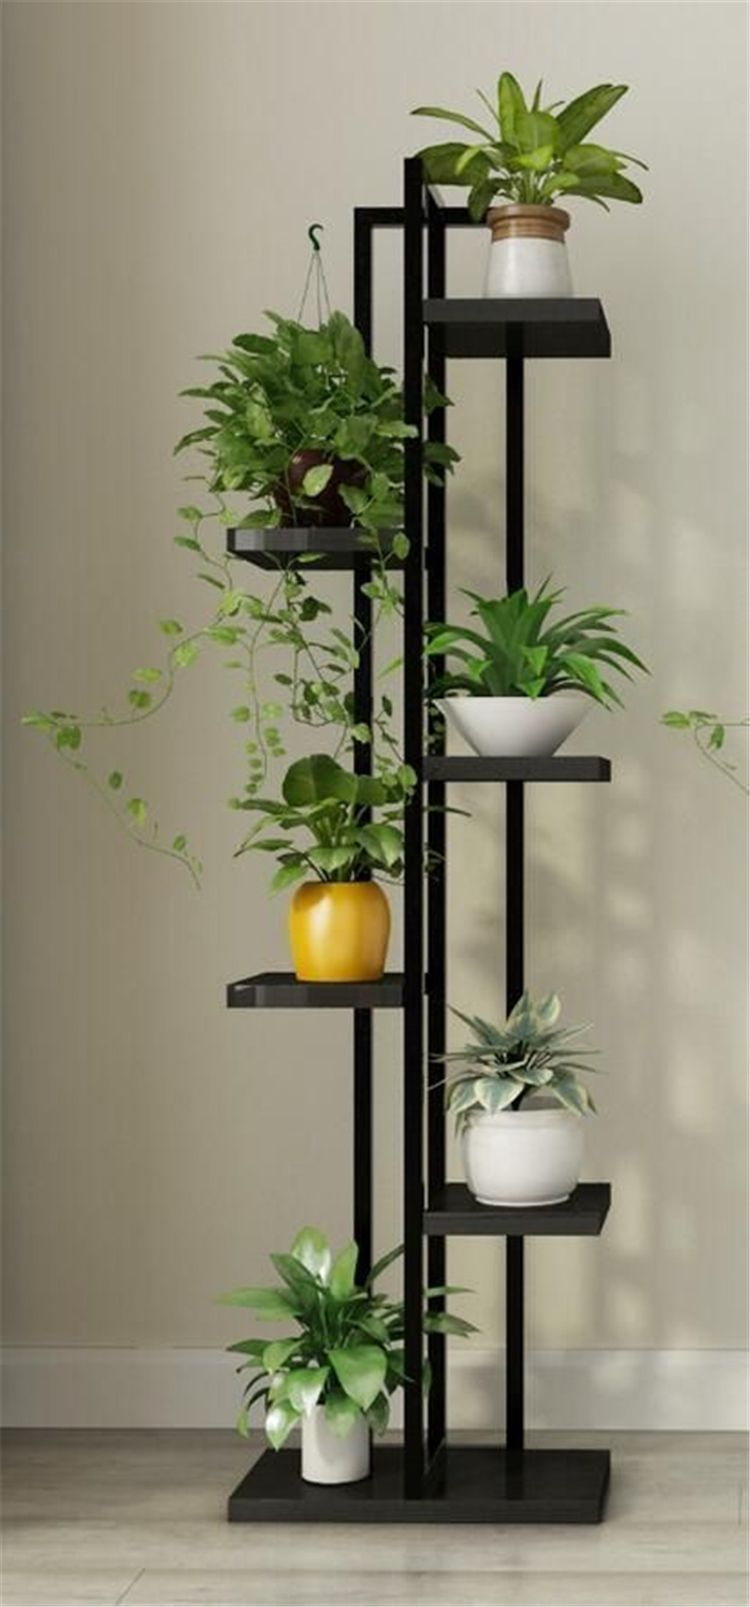 60 Impressive And Simple Indoor Hanging Plants Ideas For Your Home Decor - Women Fashion Lifestyle Blog Shinecoco.com